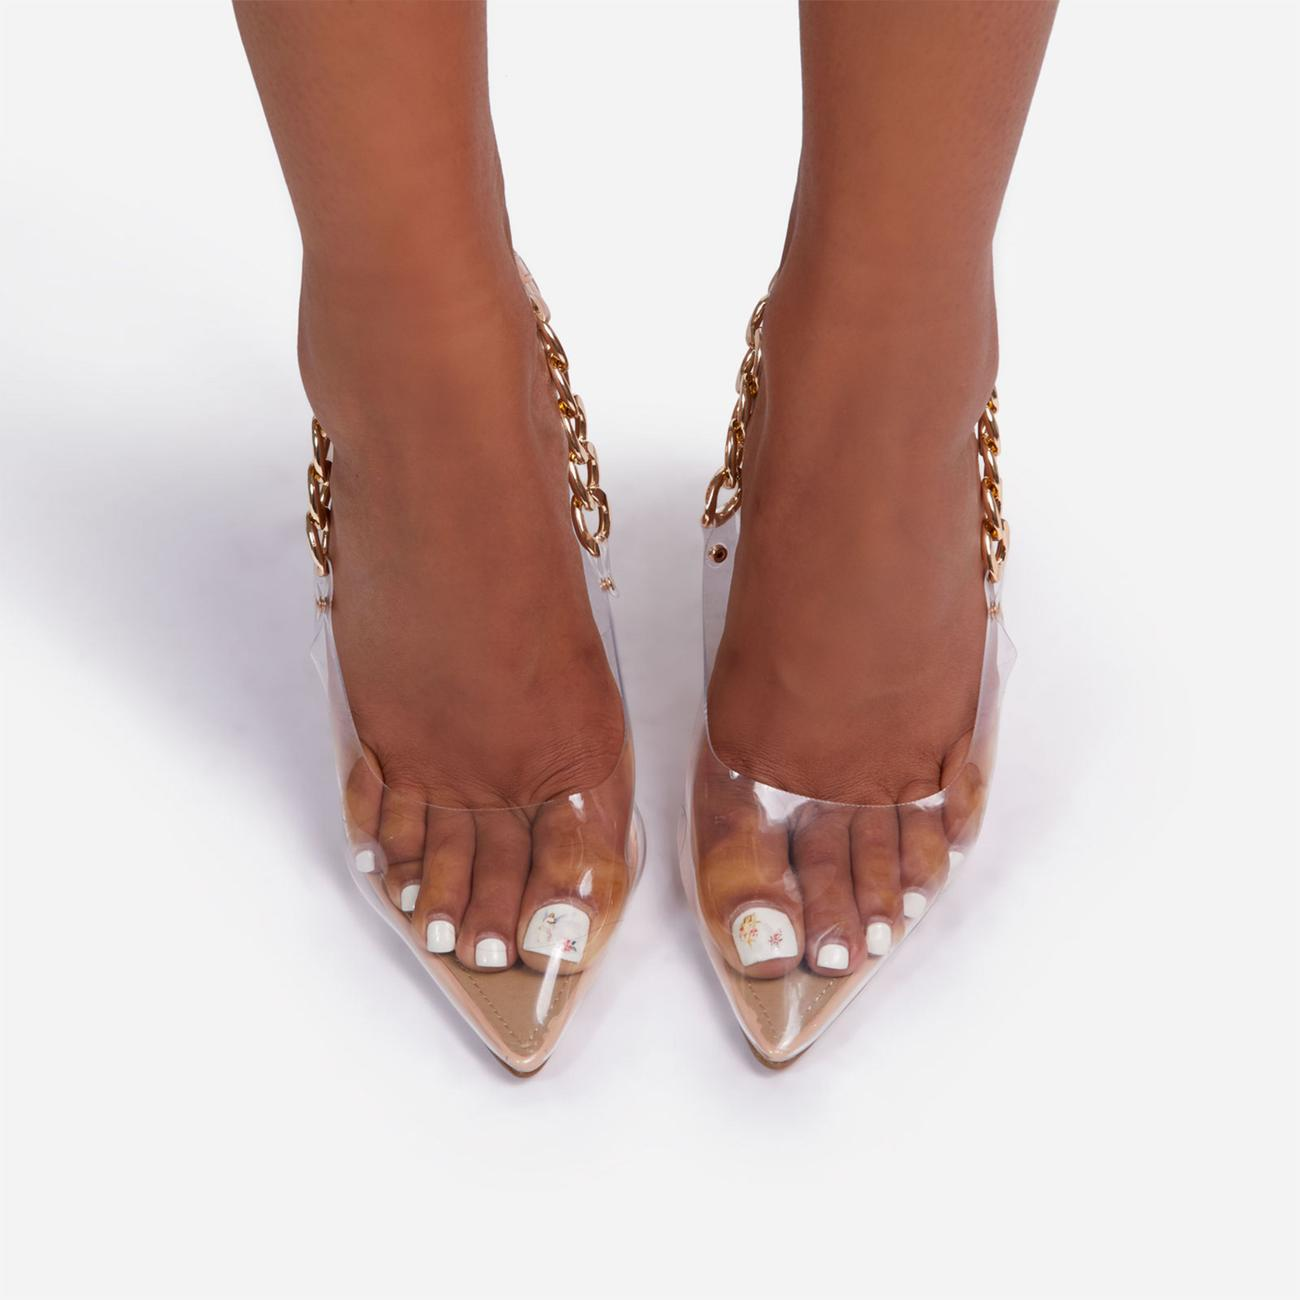 Martini Chunky Chain Detail Sling Back Clear Perspex Heel In Nude Faux Leather Image 4